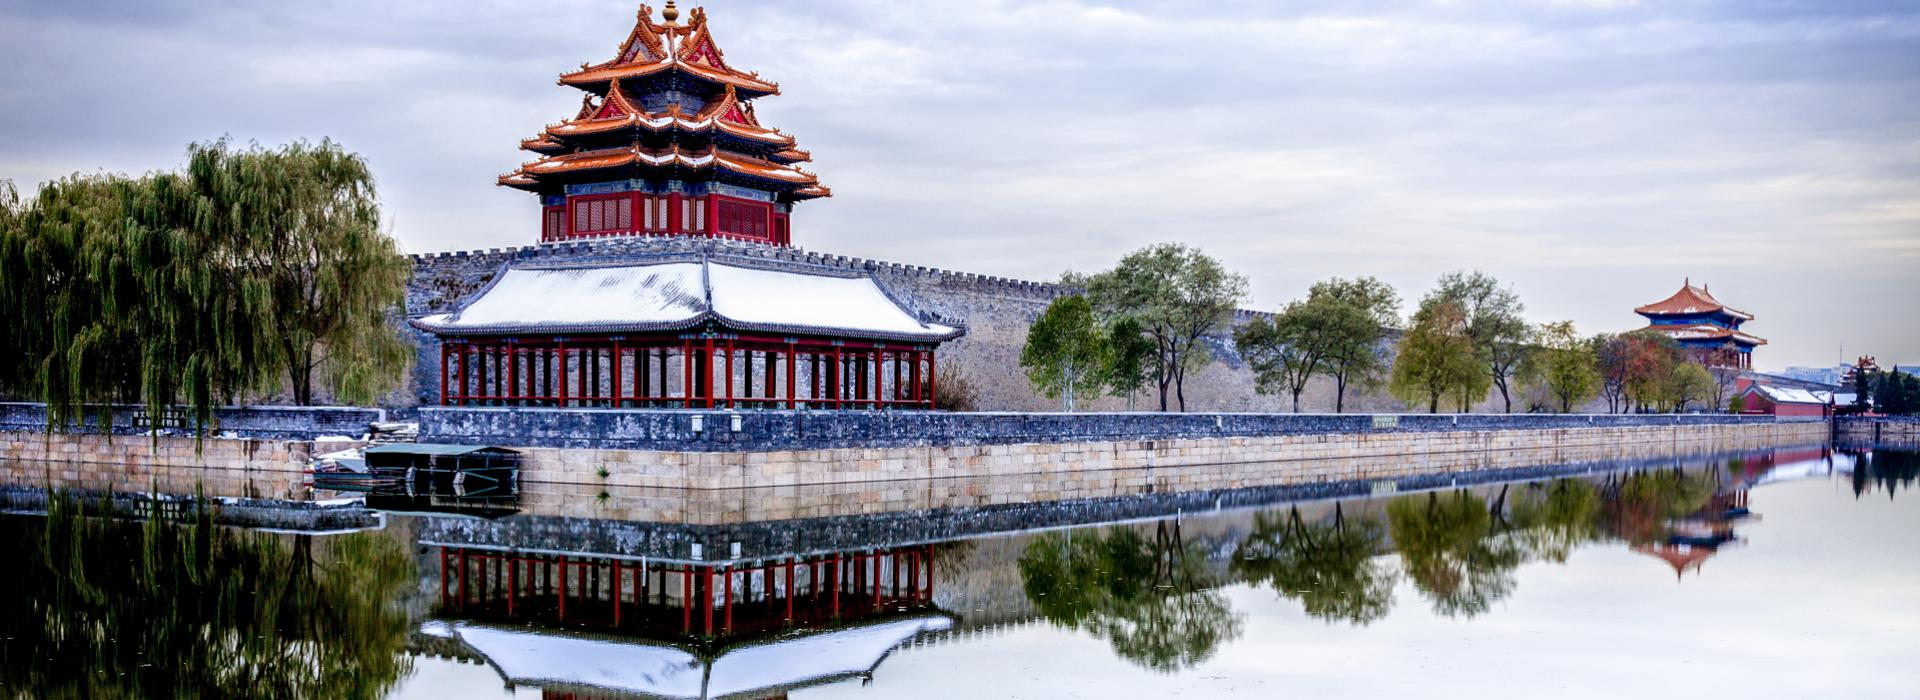 The Forbidden City during winter